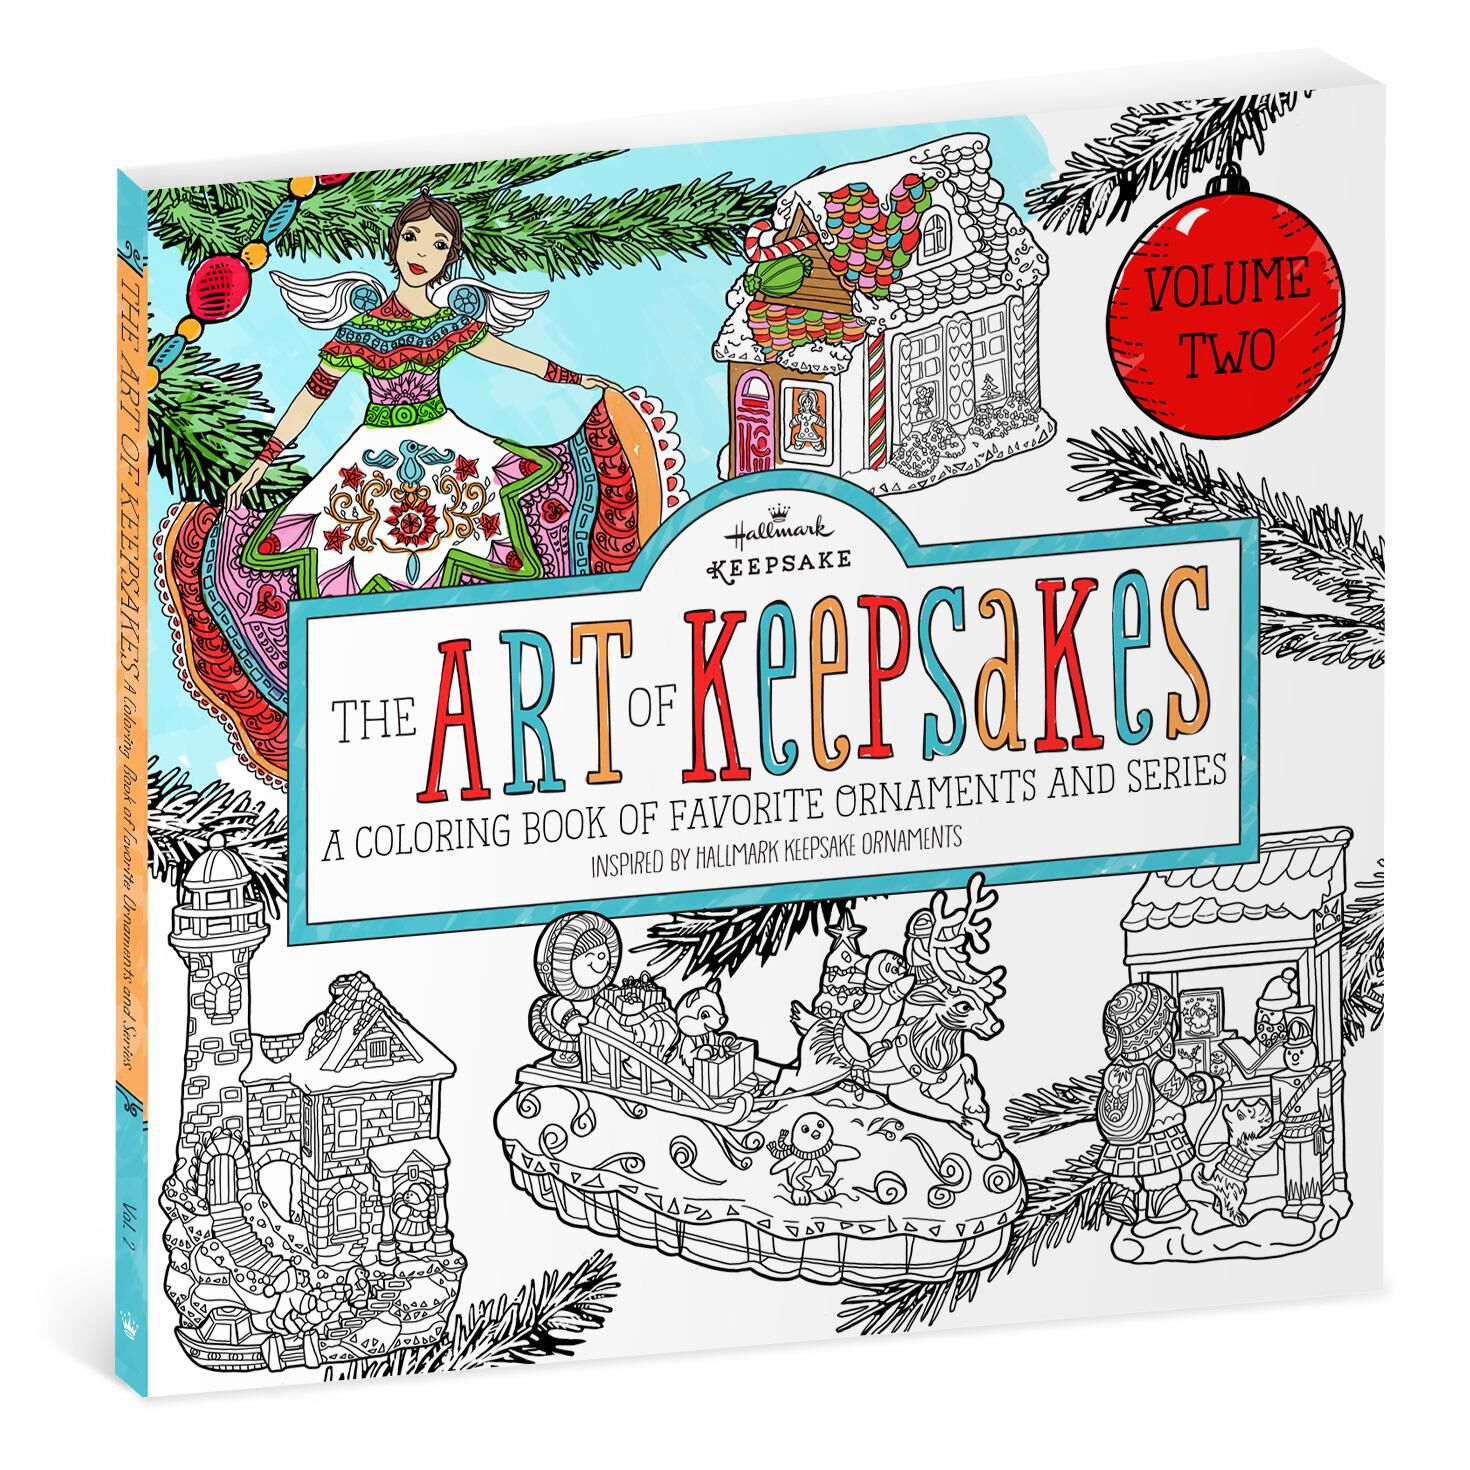 The coloring book for adults - The Art Of Keepsakes Volume 2 Coloring Book For Adults Coloring Books Hallmark